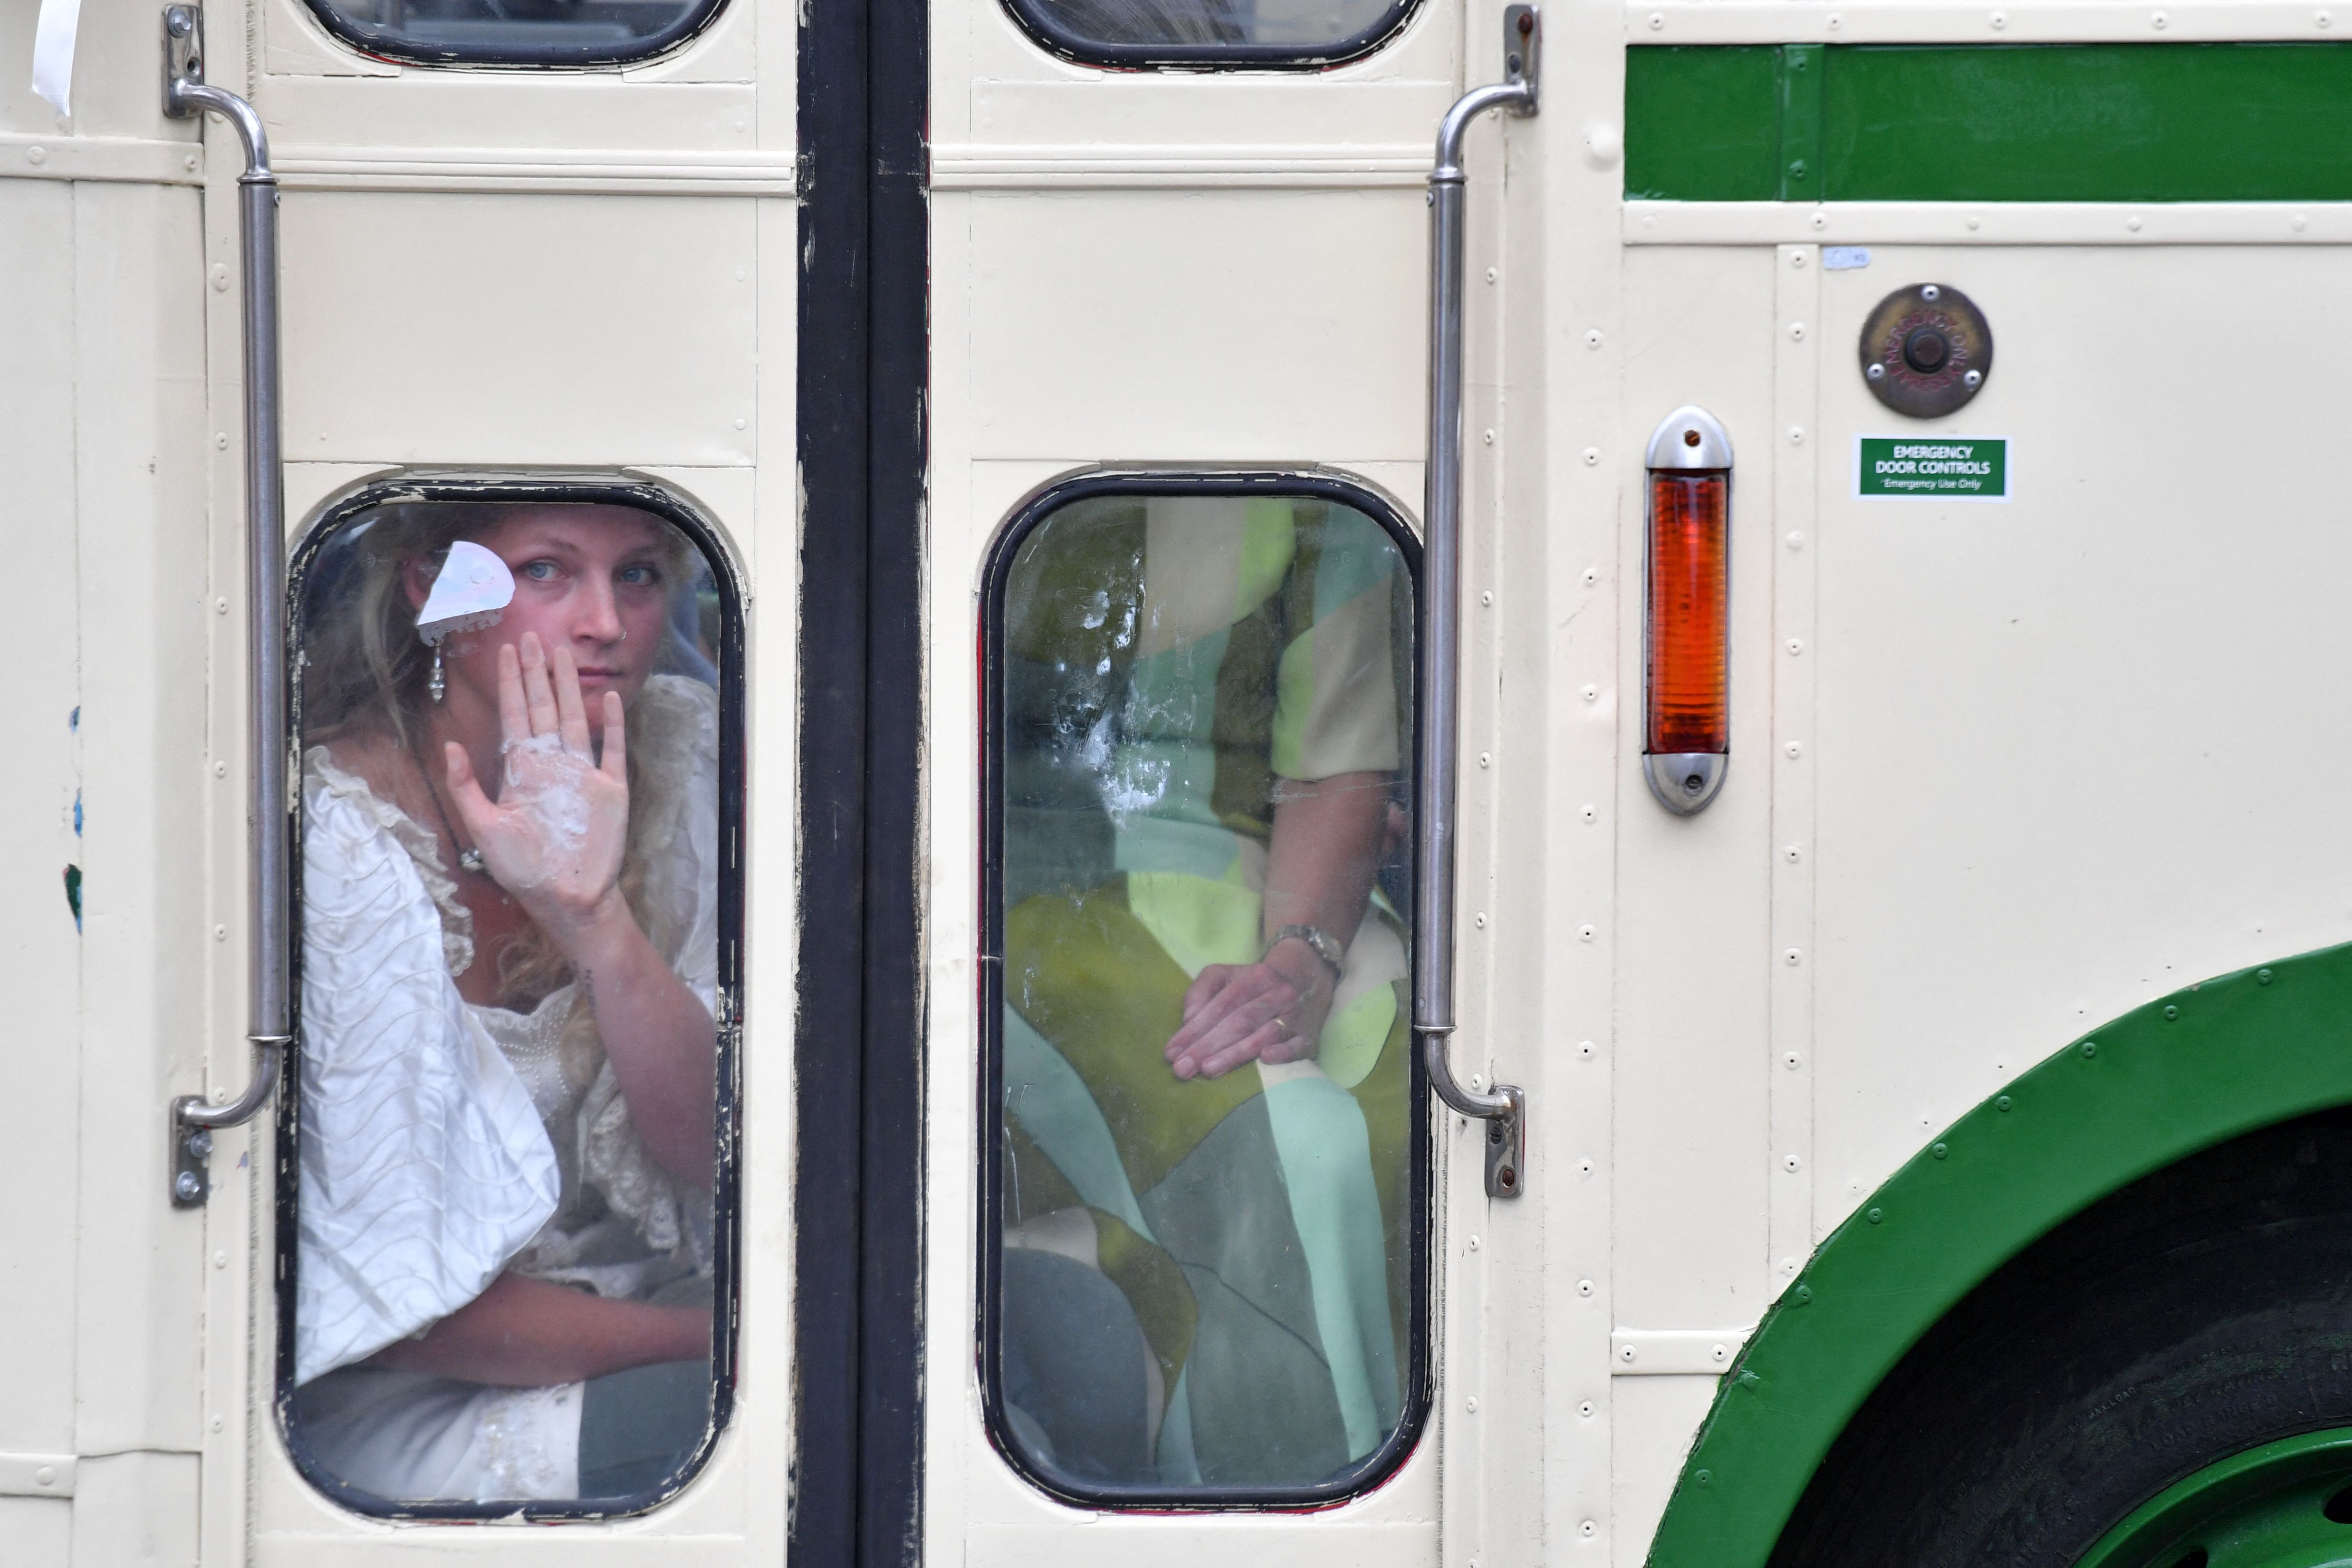 <p>A protester shows her glued palm against a window, as police officers surround a vehicle parked across the road by climate activists from the Extinction Rebellion group, blocking the road over London Bridge in central London on August 31, 2021 during the group's 'Impossible Rebellion' series of actions. - Climate change demonstrators from environmental activist group Extinction Rebellion continued with their latest round of protests in central London, promising two weeks of disruption. (Photo by JUSTIN TALLIS / AFP) (Photo by JUSTIN TALLIS/AFP via Getty Images)</p>